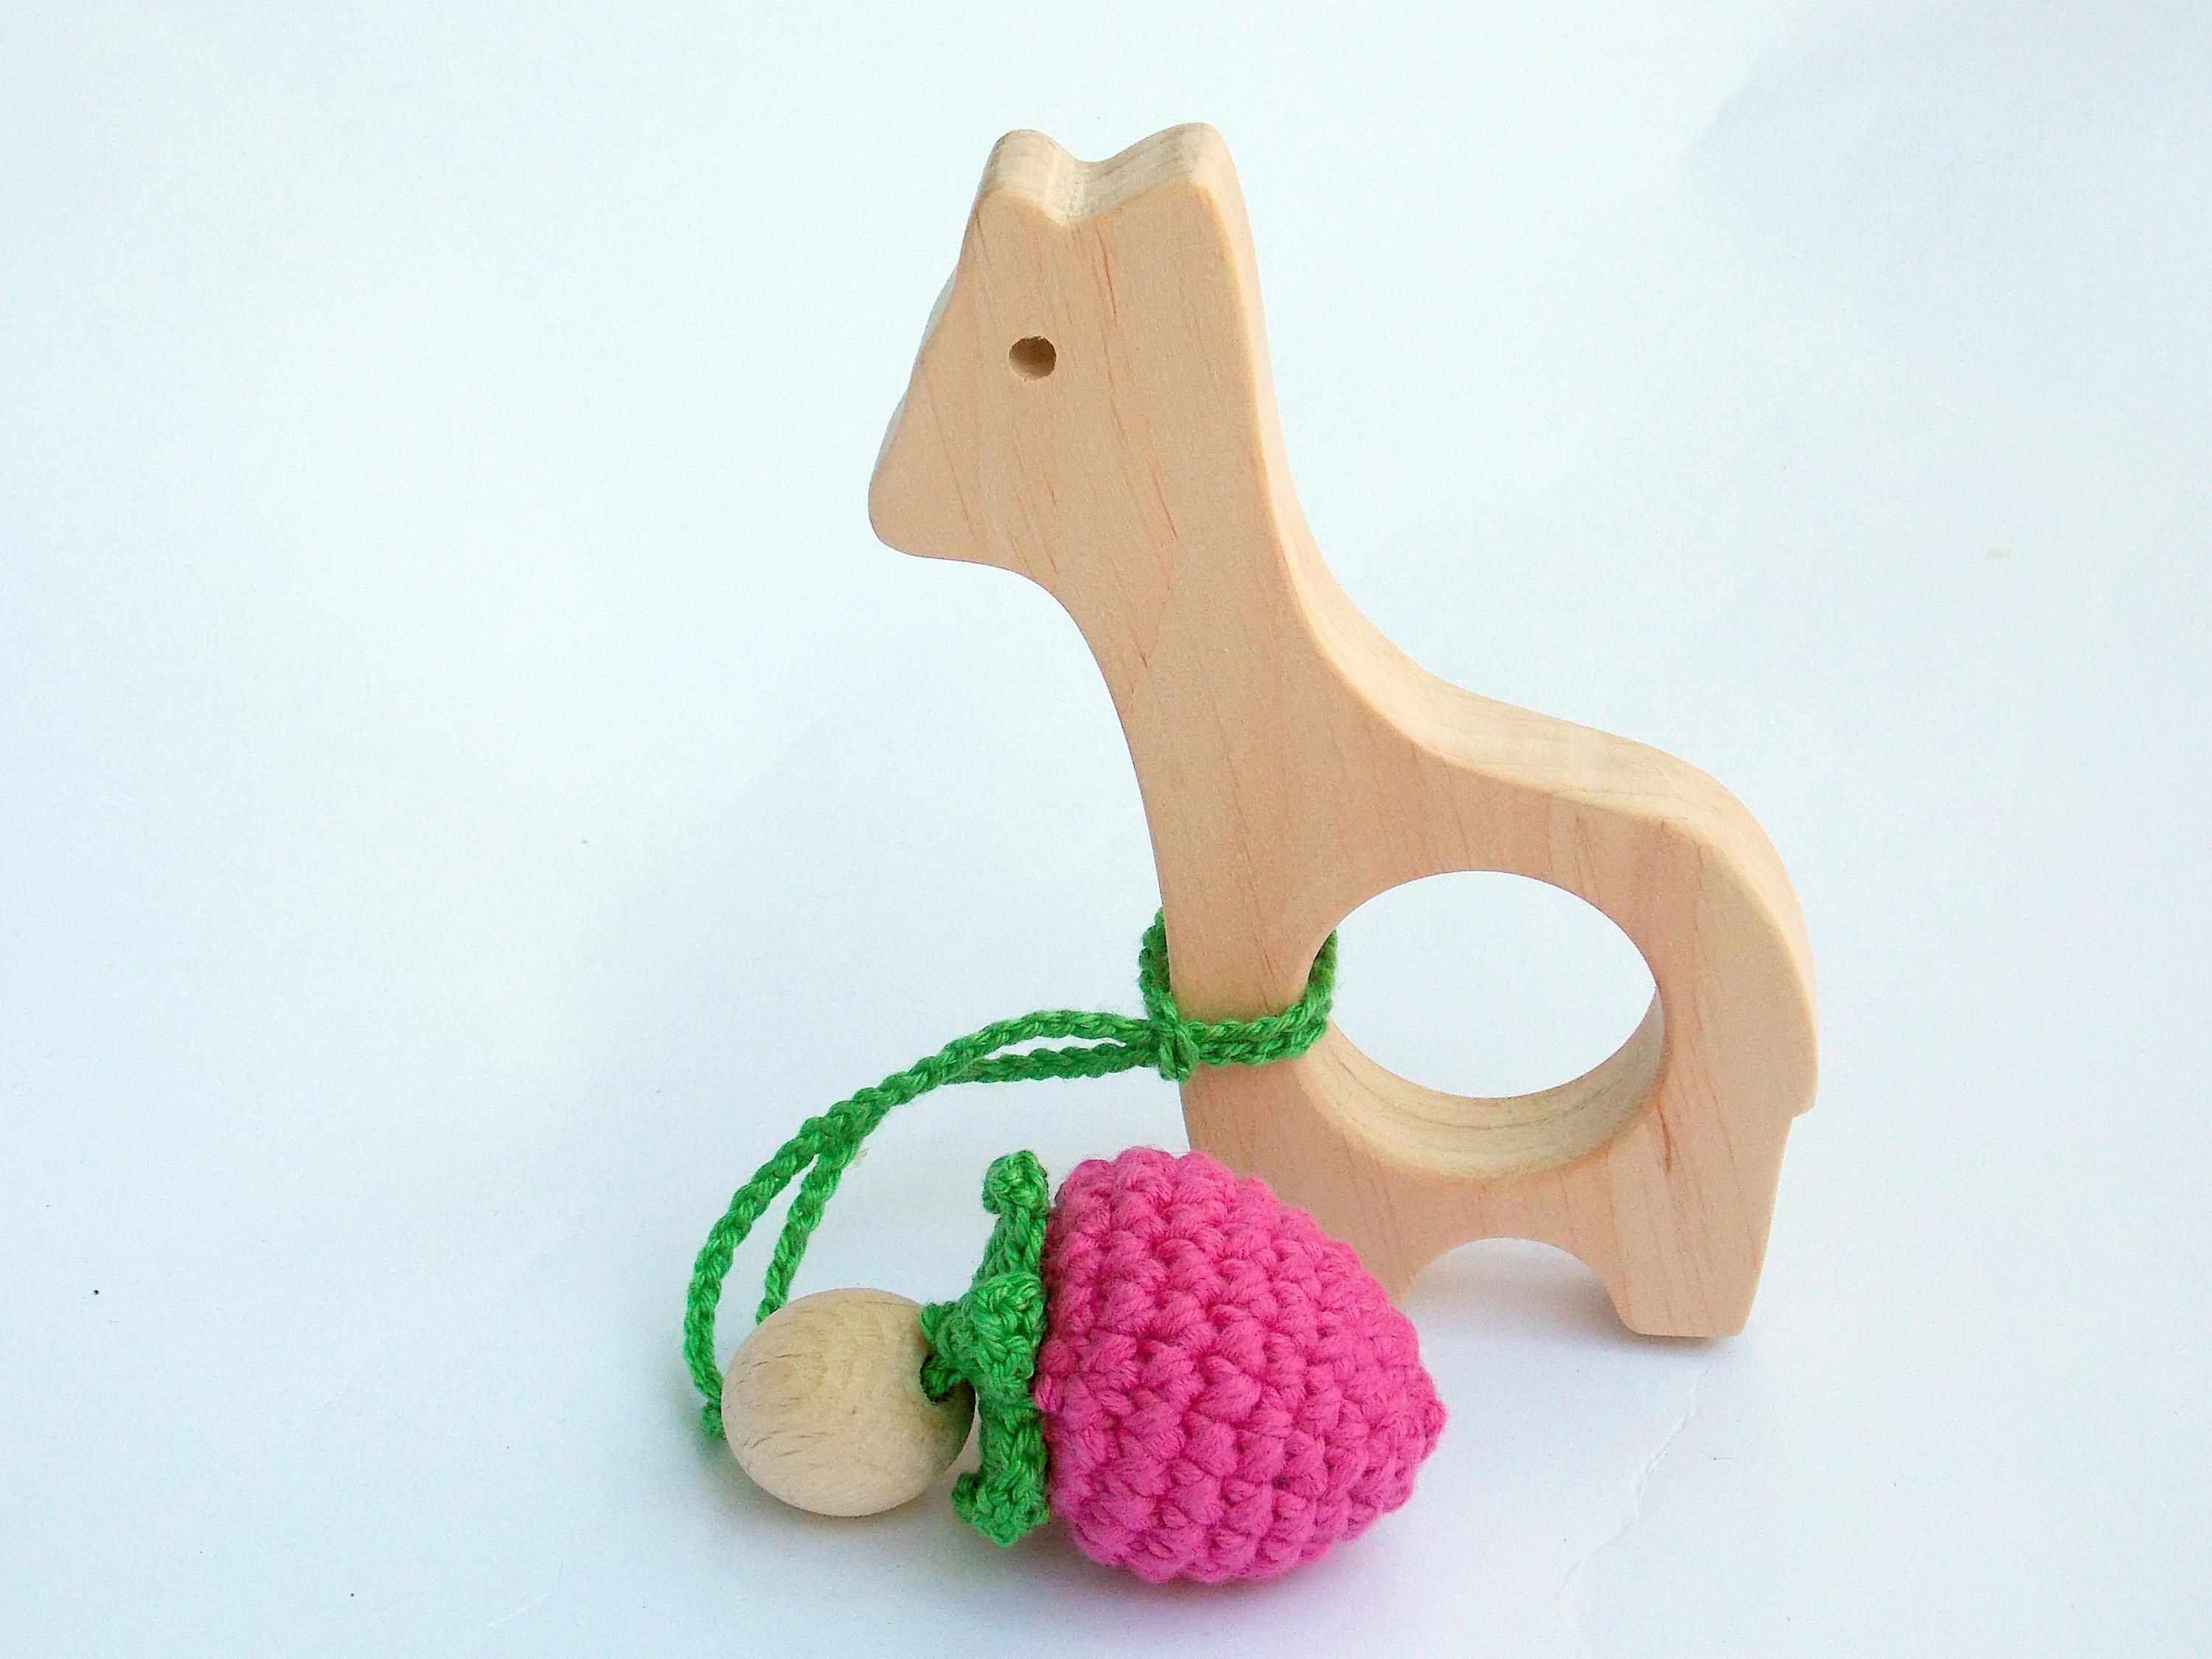 Giraffe teething Wooden Baby Toys Lama with blueberries Baby